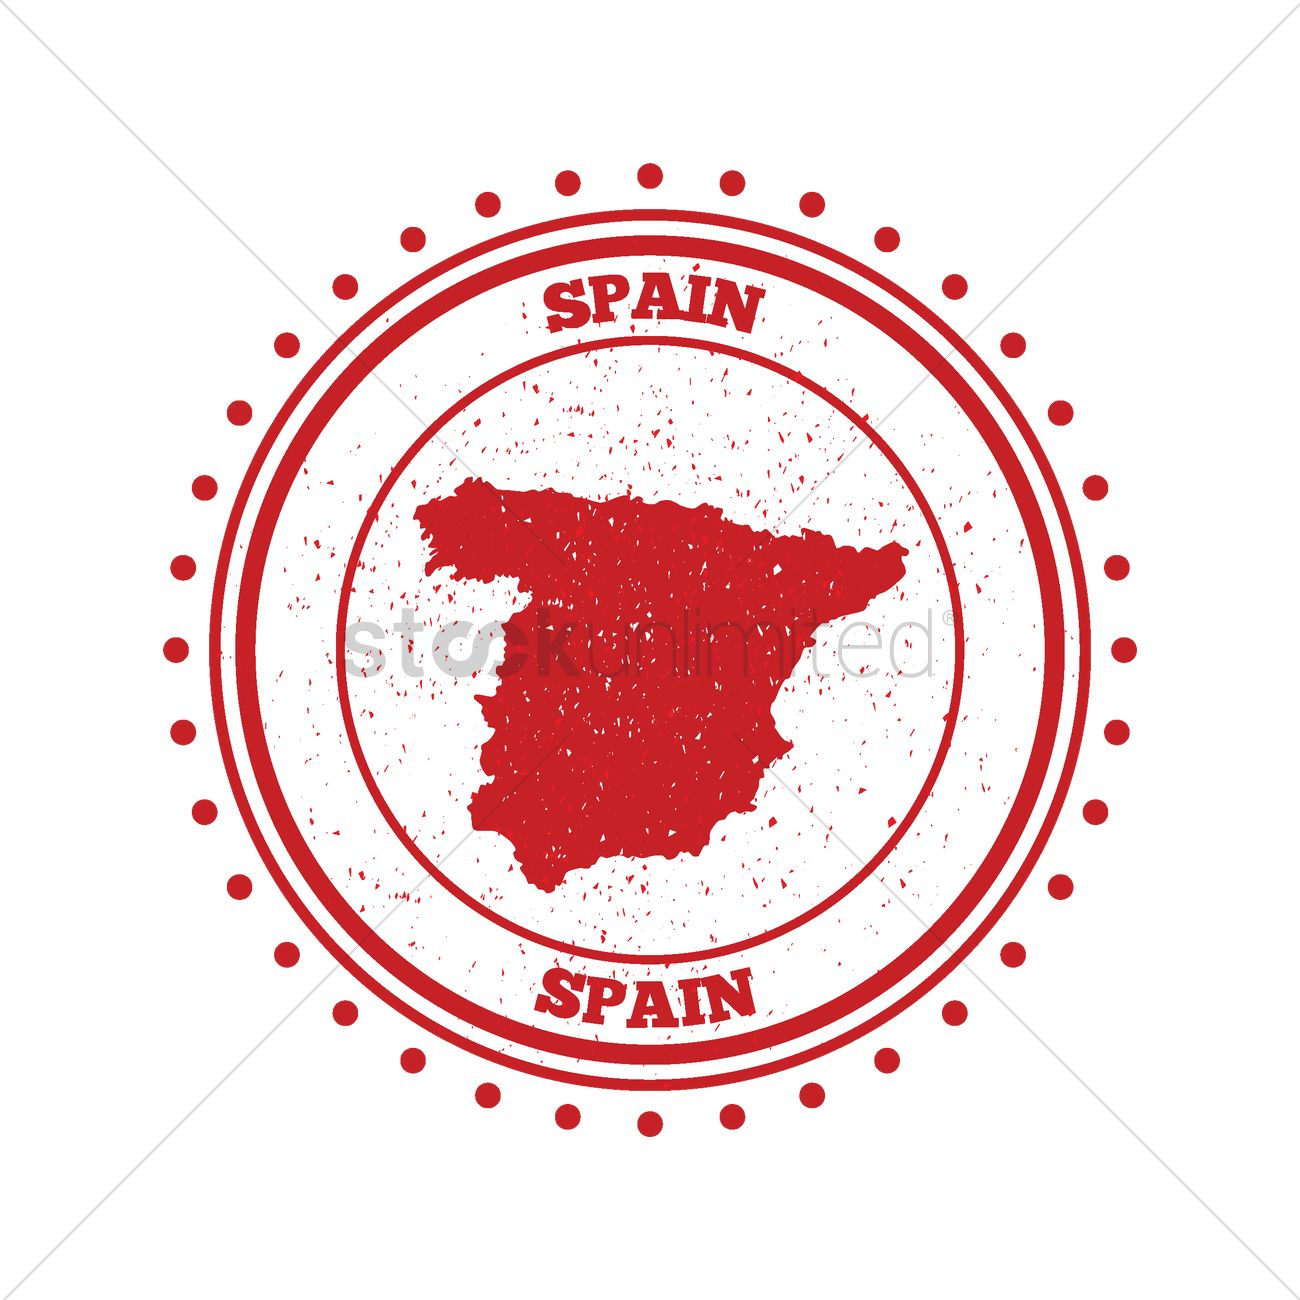 Map Of Spain To Label.Spain Map Label Vector Image 1564894 Stockunlimited